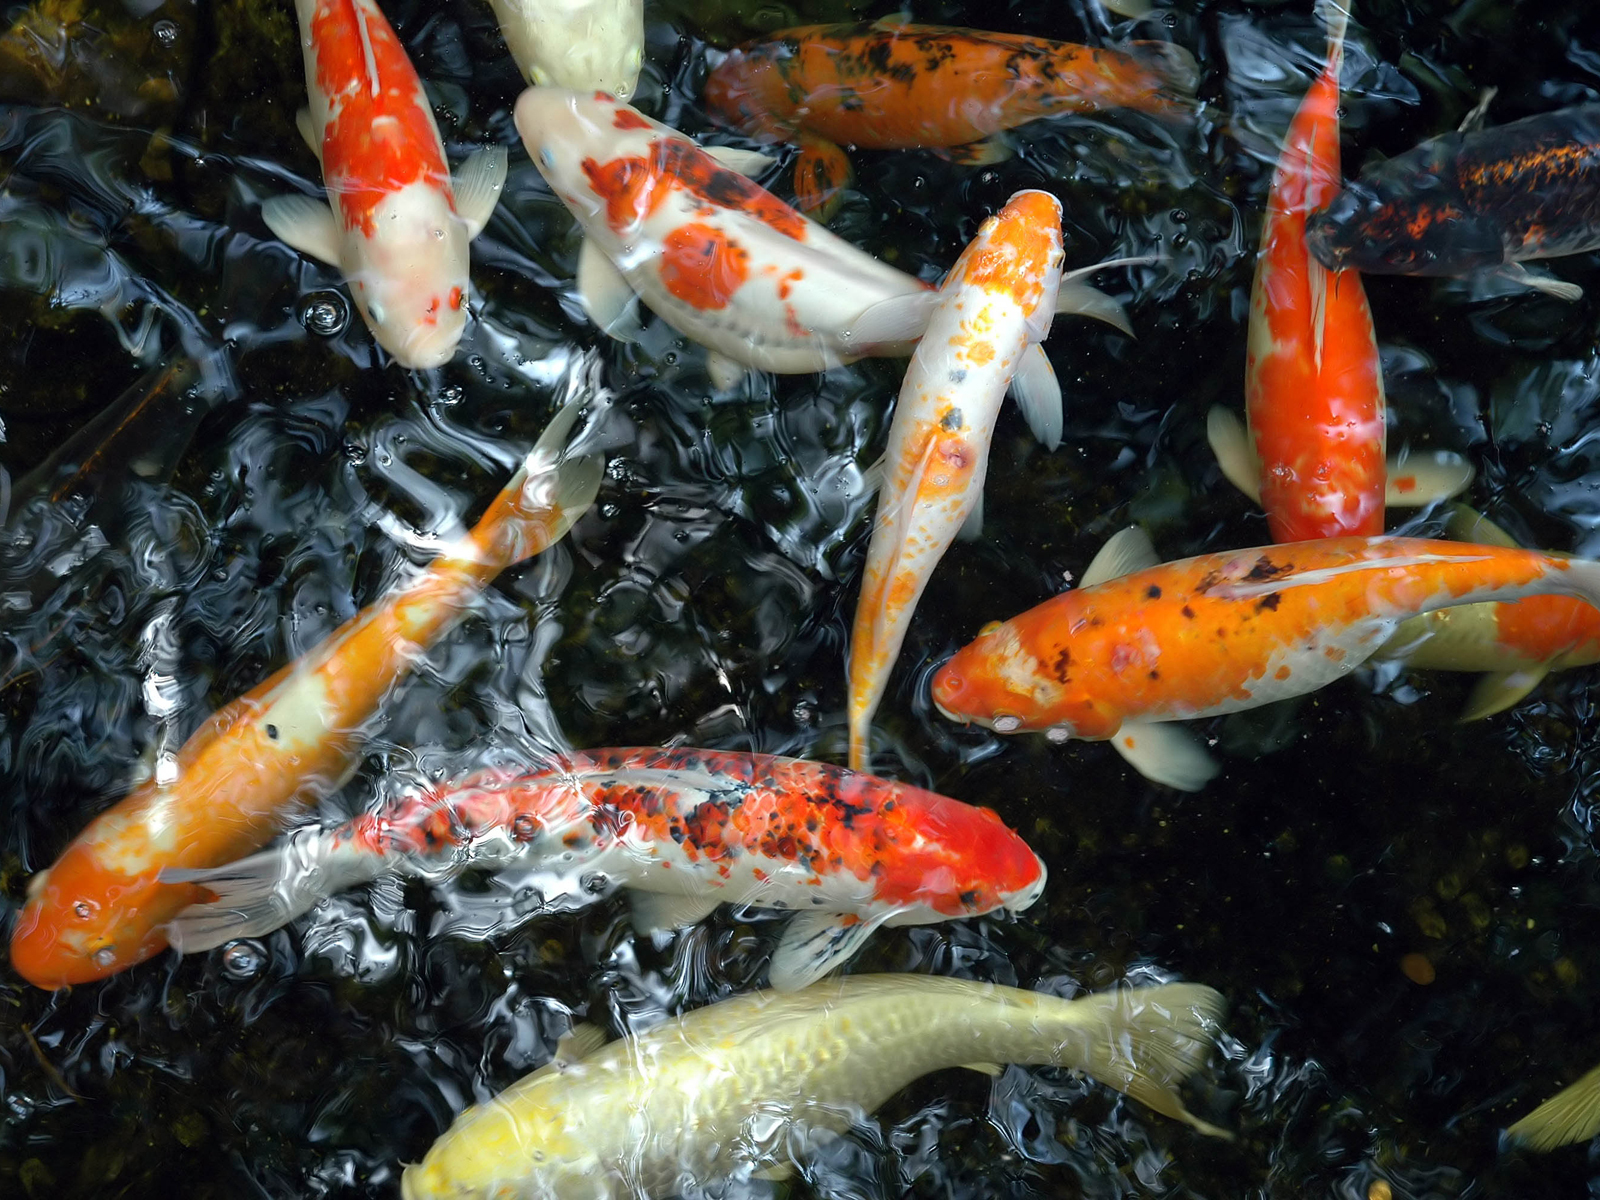 Moving koi fish wallpaper wallpapersafari for Koi carp fish information